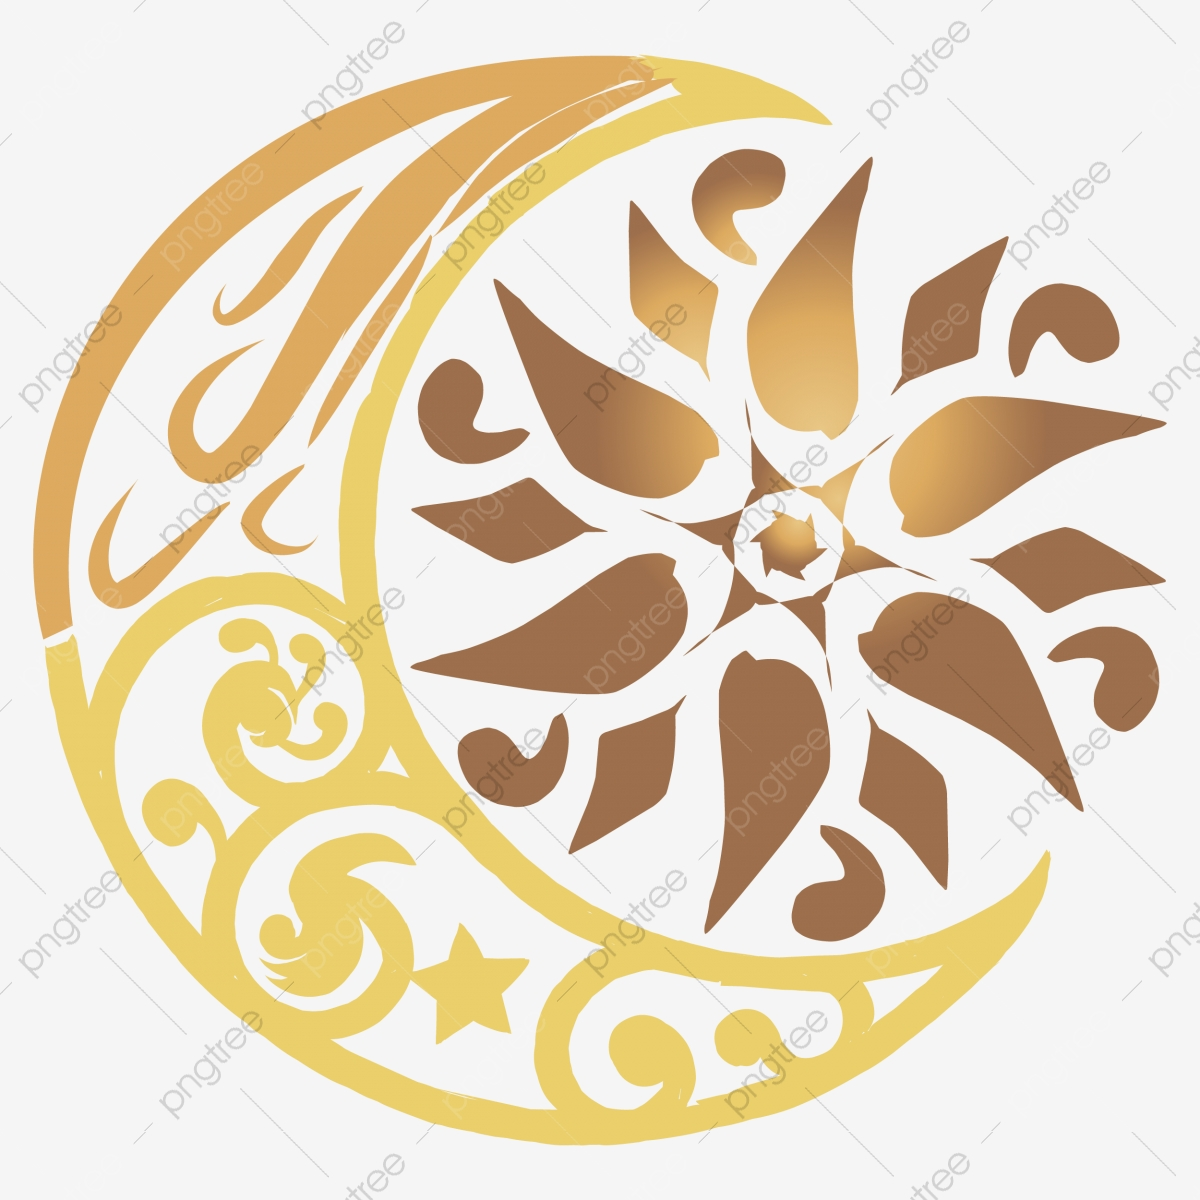 batik png images vector and psd files free download on pngtree https pngtree com freepng vector image of white background batik 5430713 html